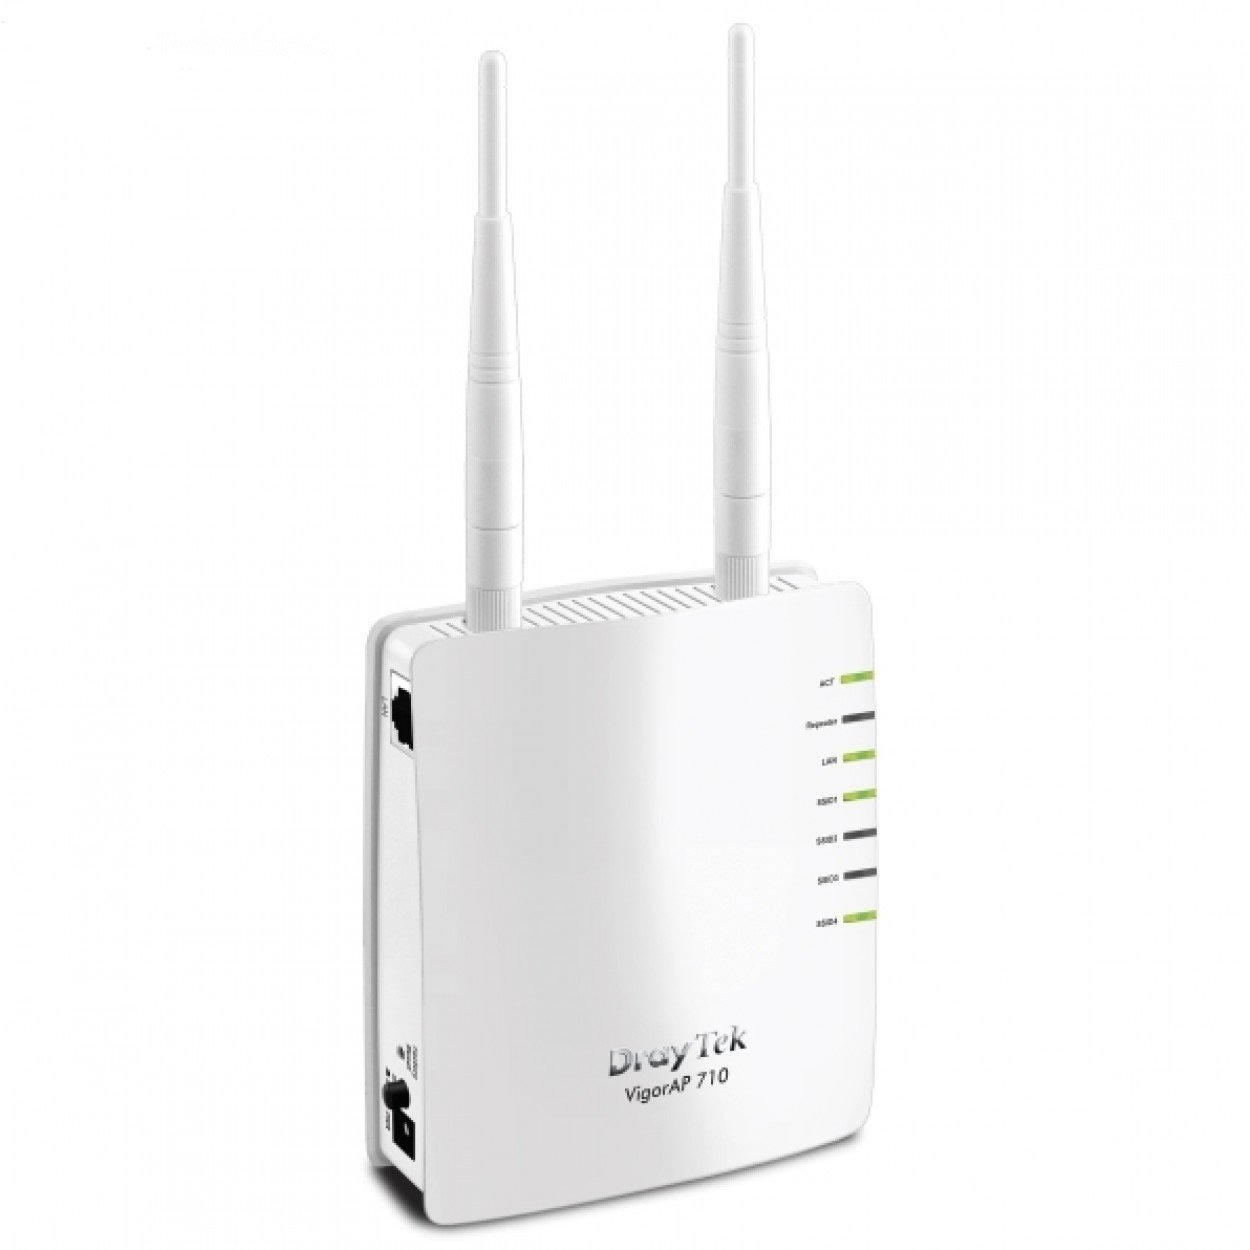 DrayTek AP710 Wifi Access Point